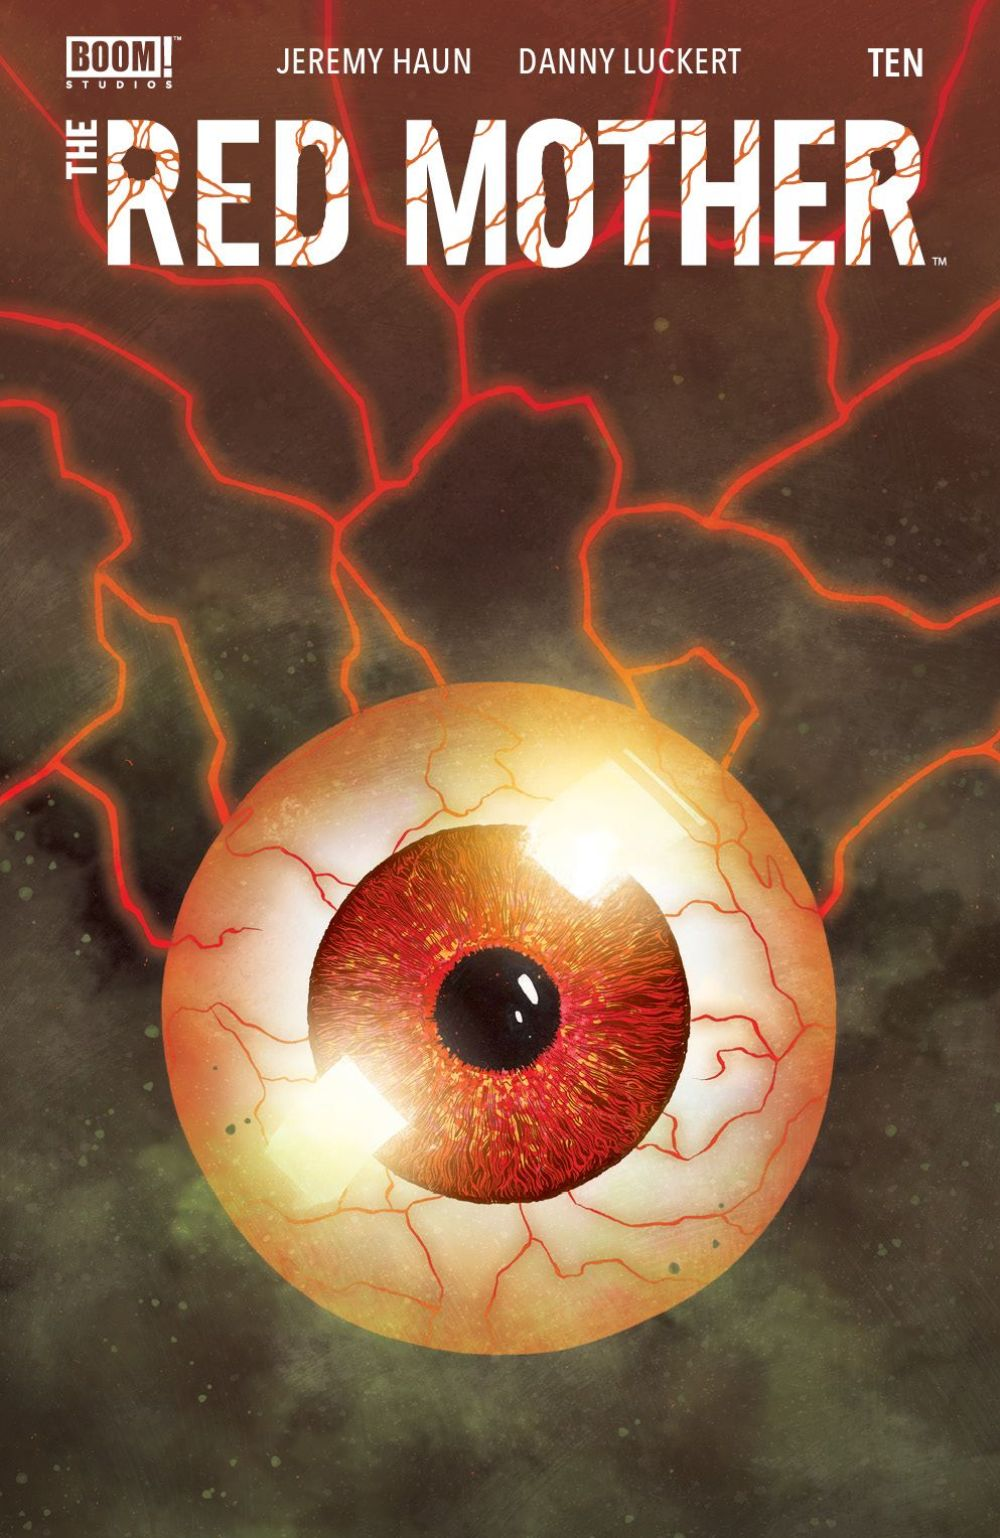 RedMother_010_Cover_A_Main ComicList Previews: THE RED MOTHER #10